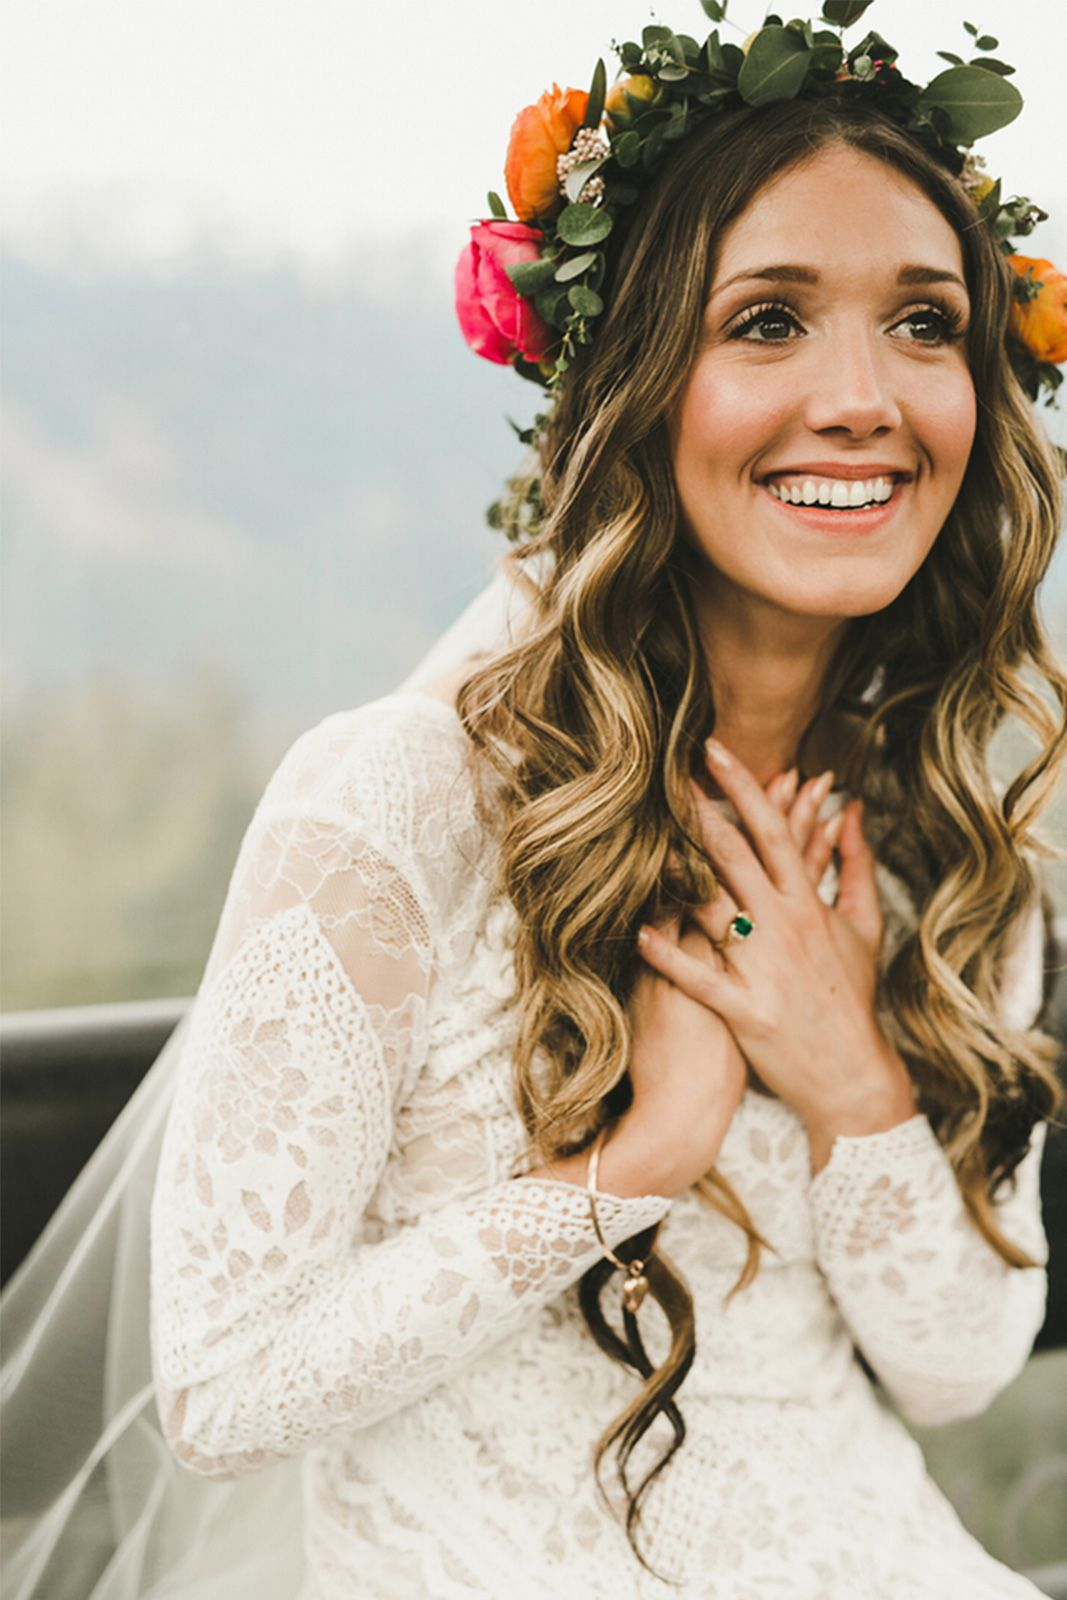 look at those lovely curls and flower crown! perfect style for the